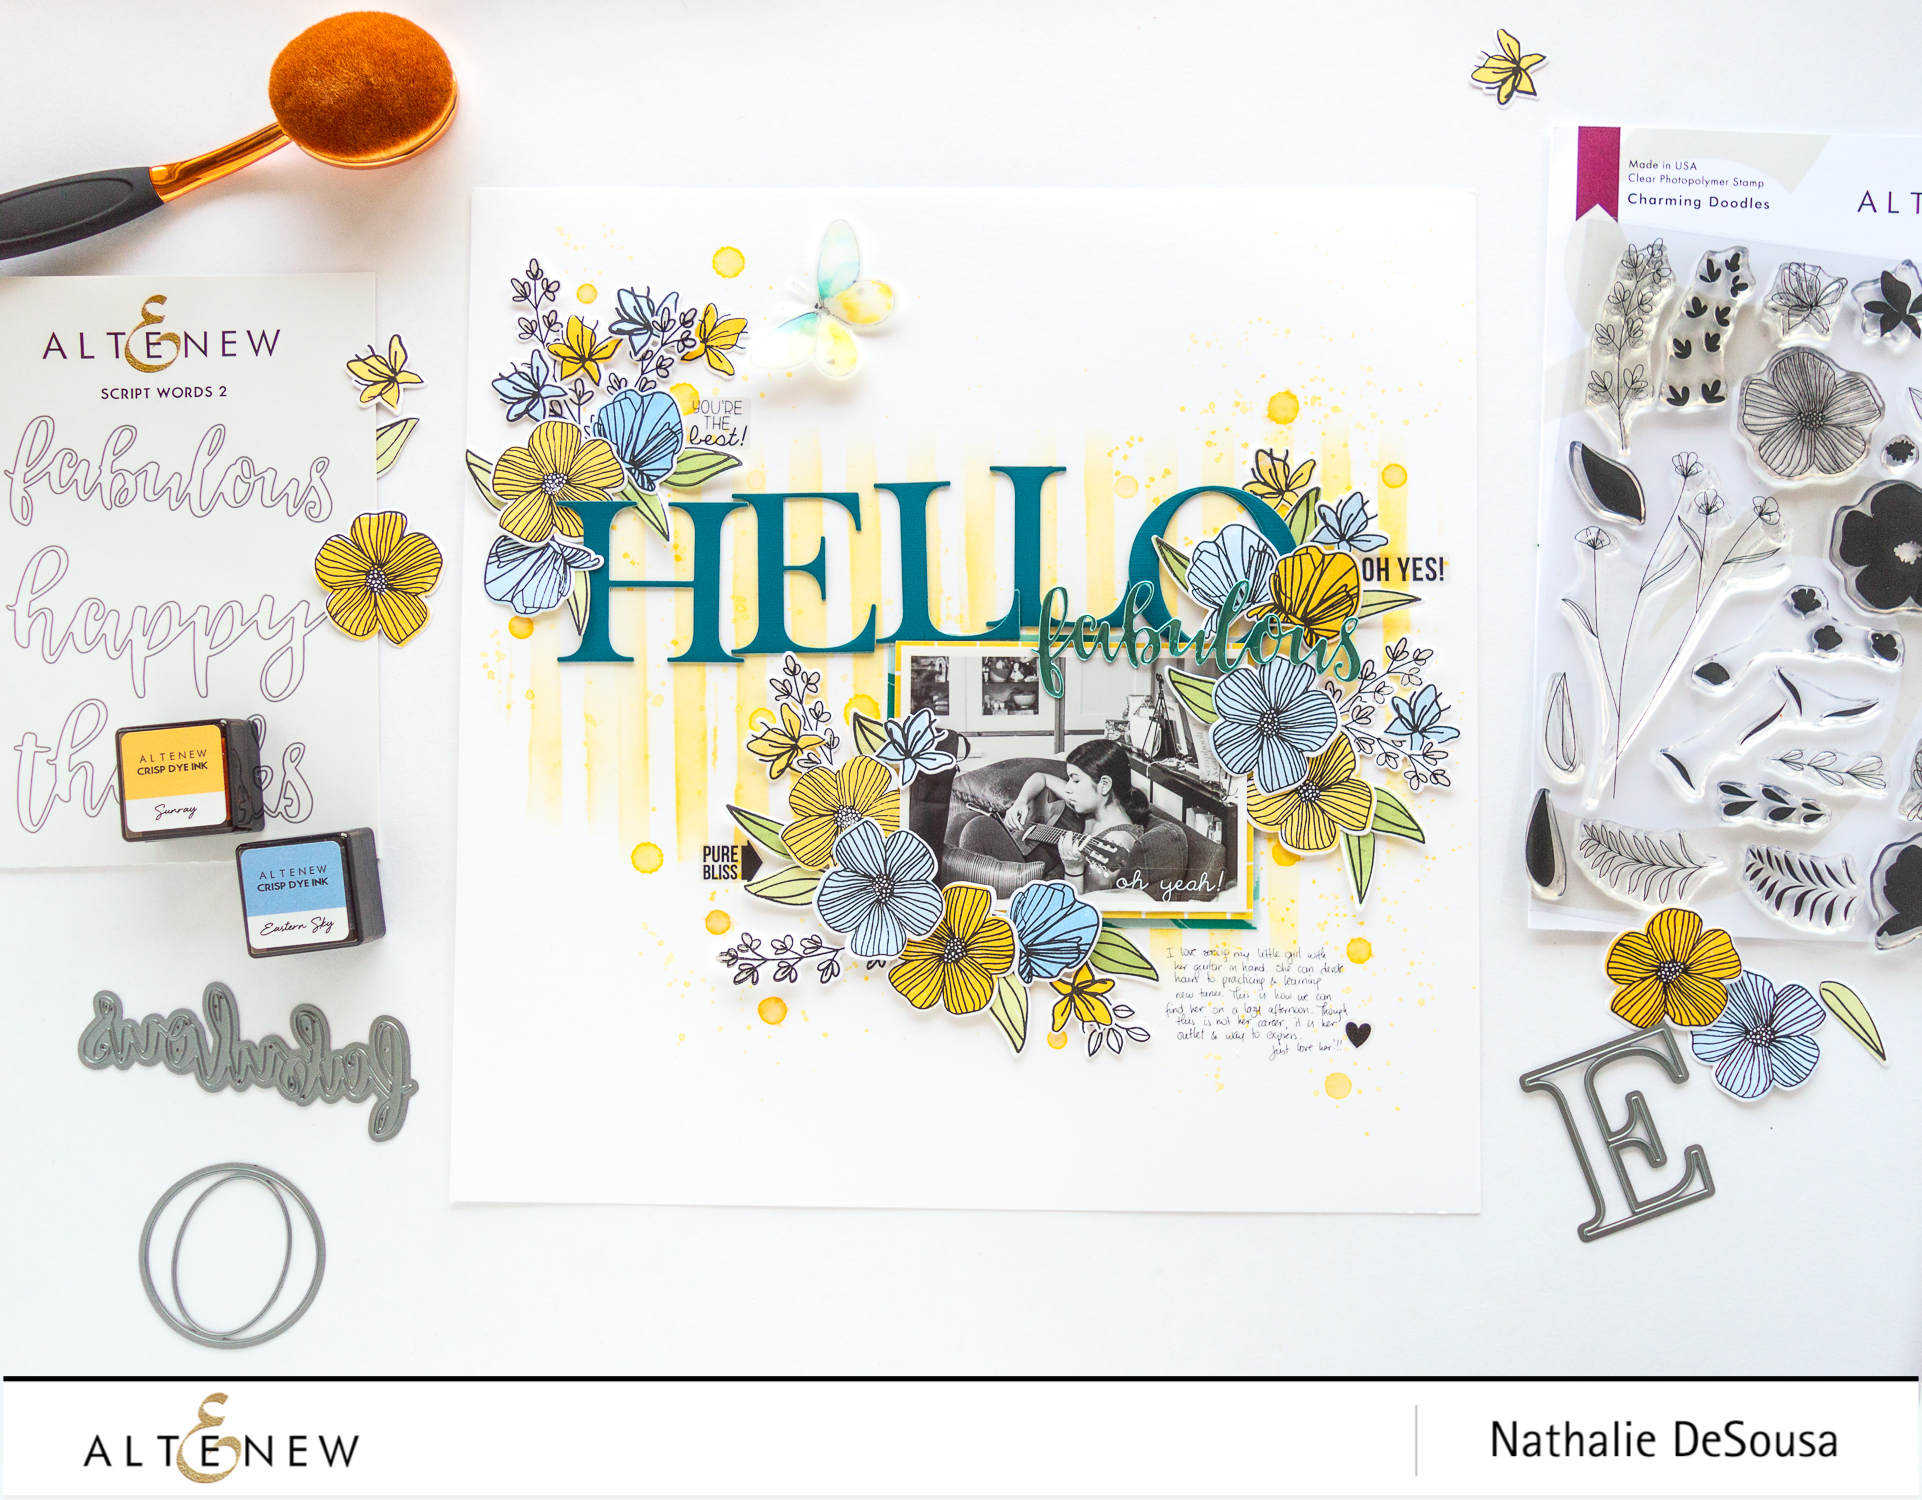 Combining Mixed Media with the Charming Doodles Stamp set -HELLO FABULOUS by Nathalie DeSousa for @altenew